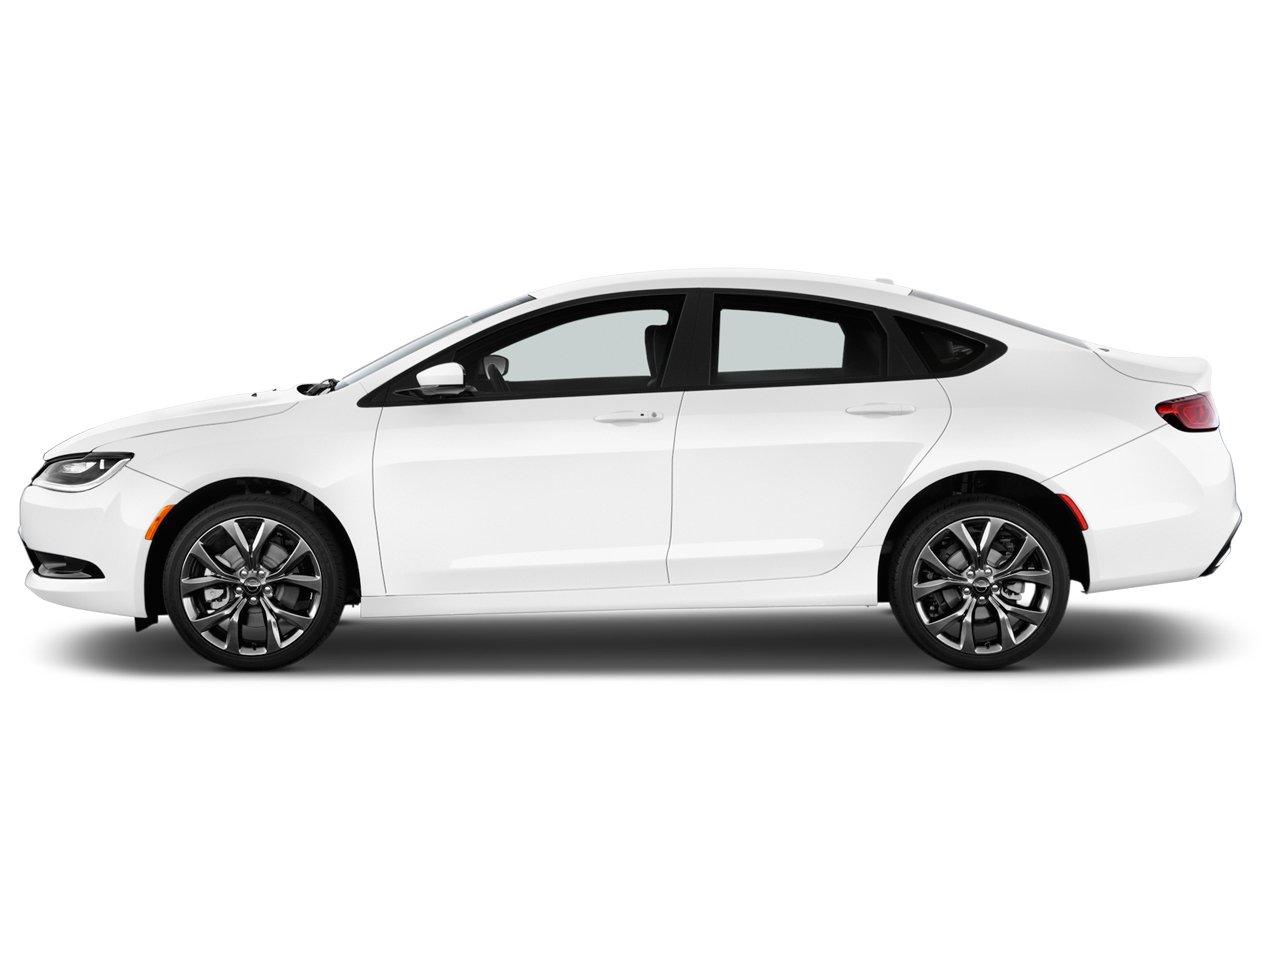 chrysler 200 2017 2 4l lx in uae new car prices specs reviews photos yallamotor. Black Bedroom Furniture Sets. Home Design Ideas